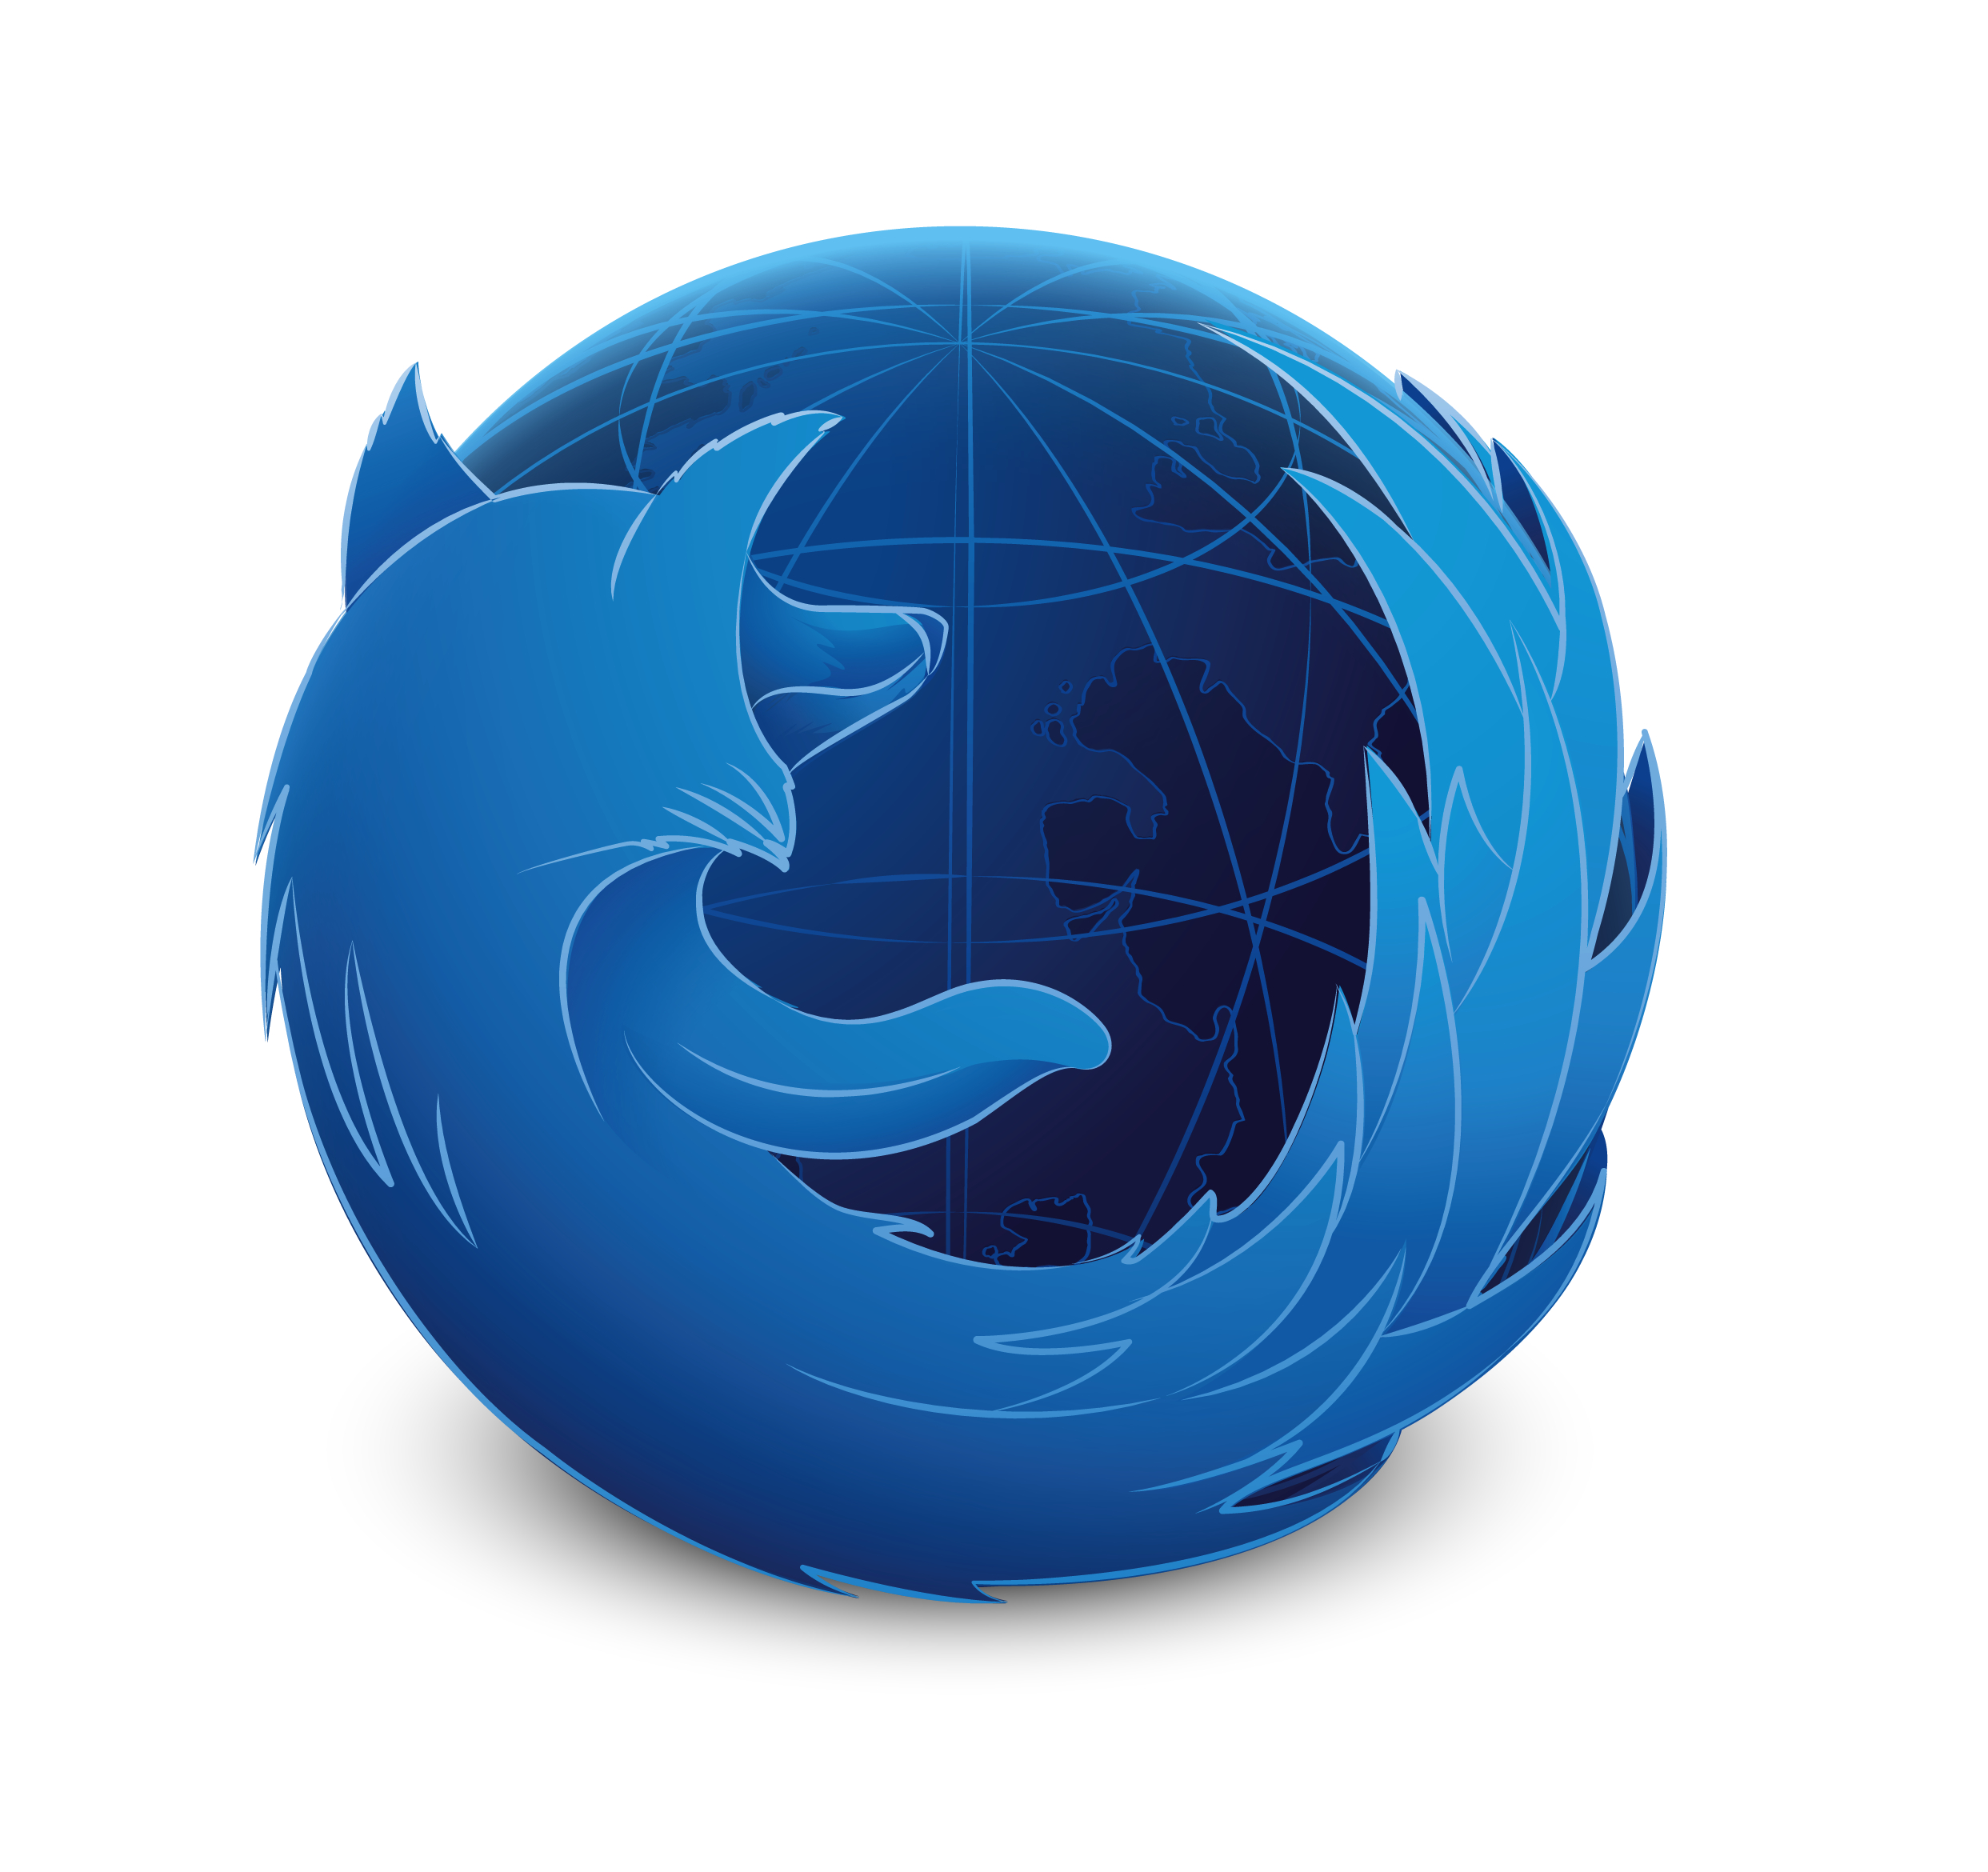 Wish to change default language | firefox support forum | mozilla.